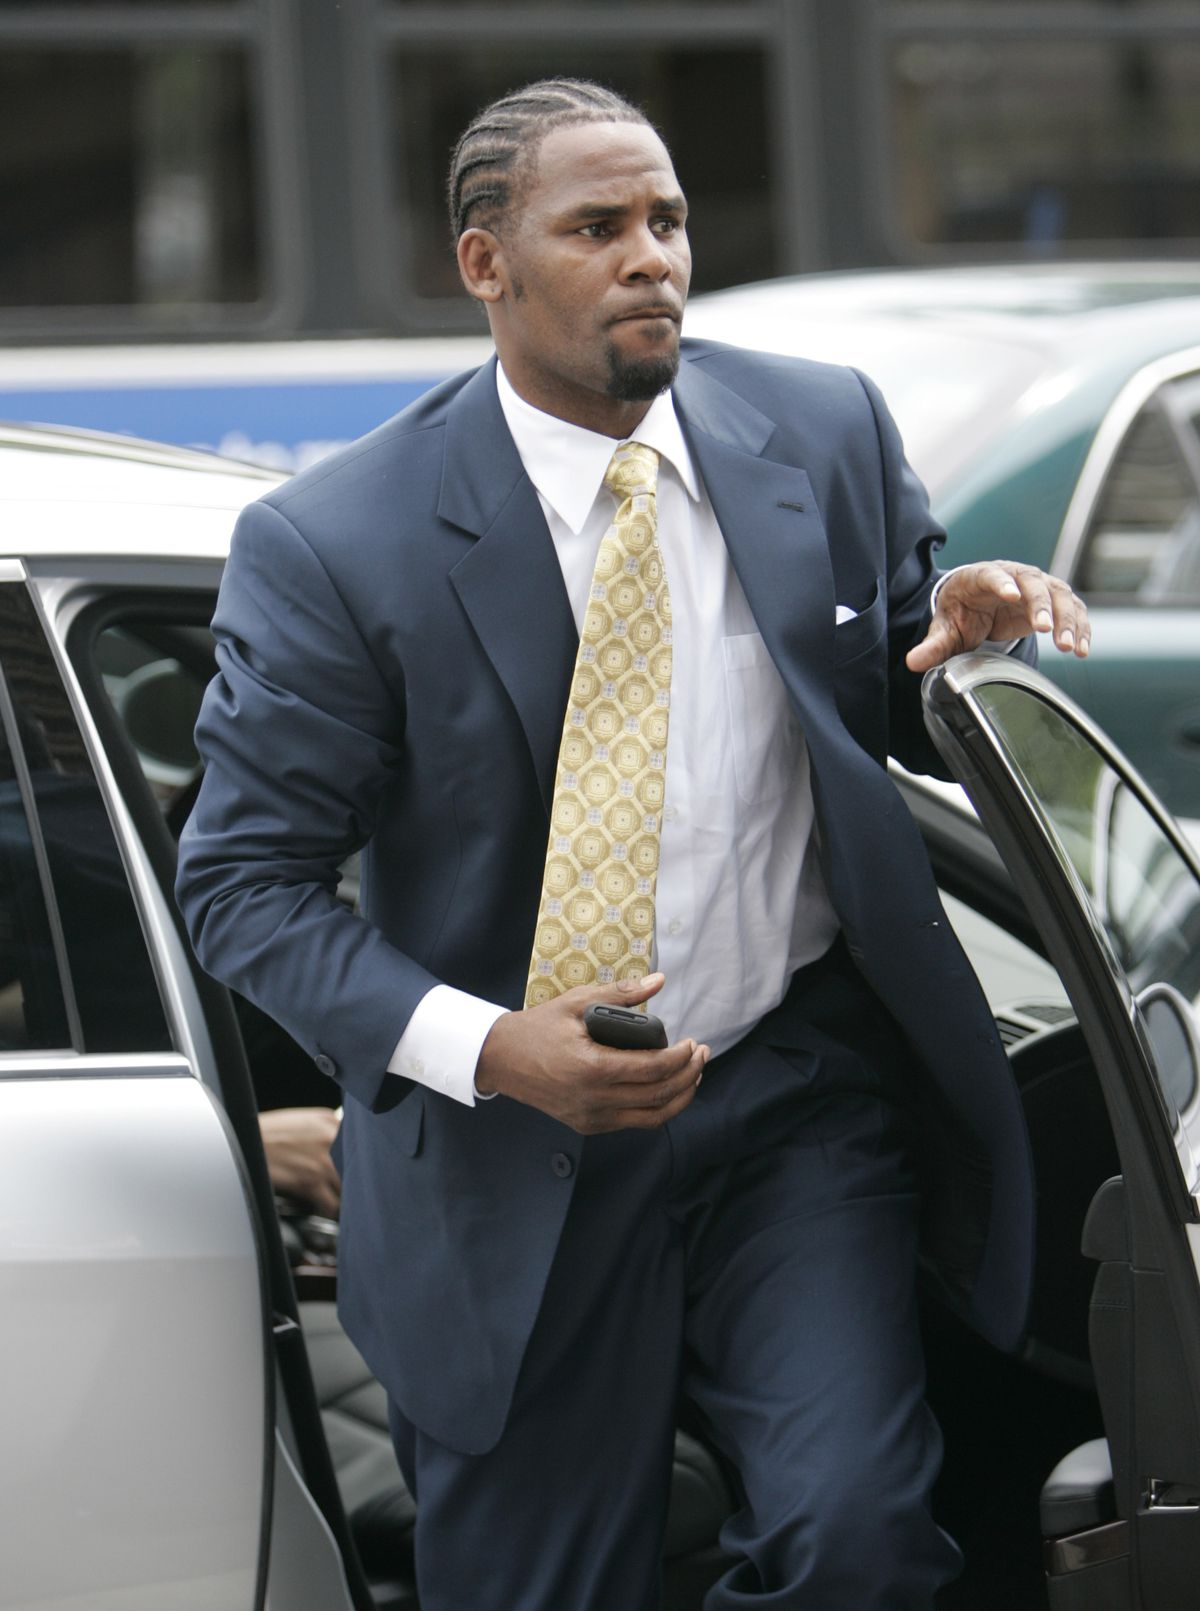 R. Kelly arrives the Cook County Criminal Court Building in 2008 when Ed Genson was representing him.   AP Photo/Nam Y. Huh, File